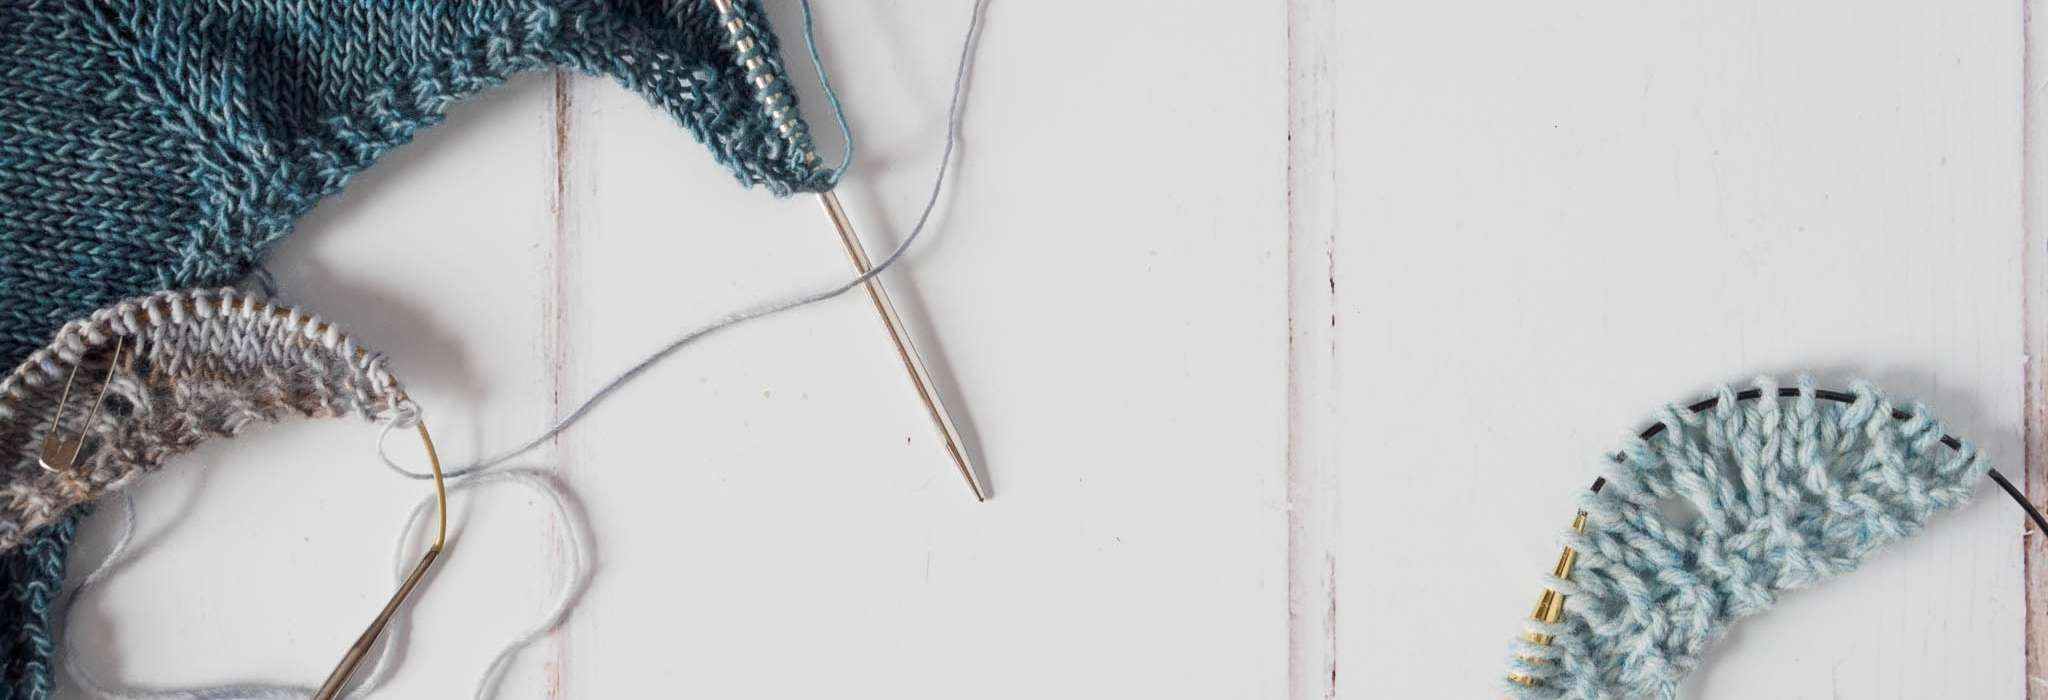 Light blue yarn and blue circular knitting needles on a wooden countertop.